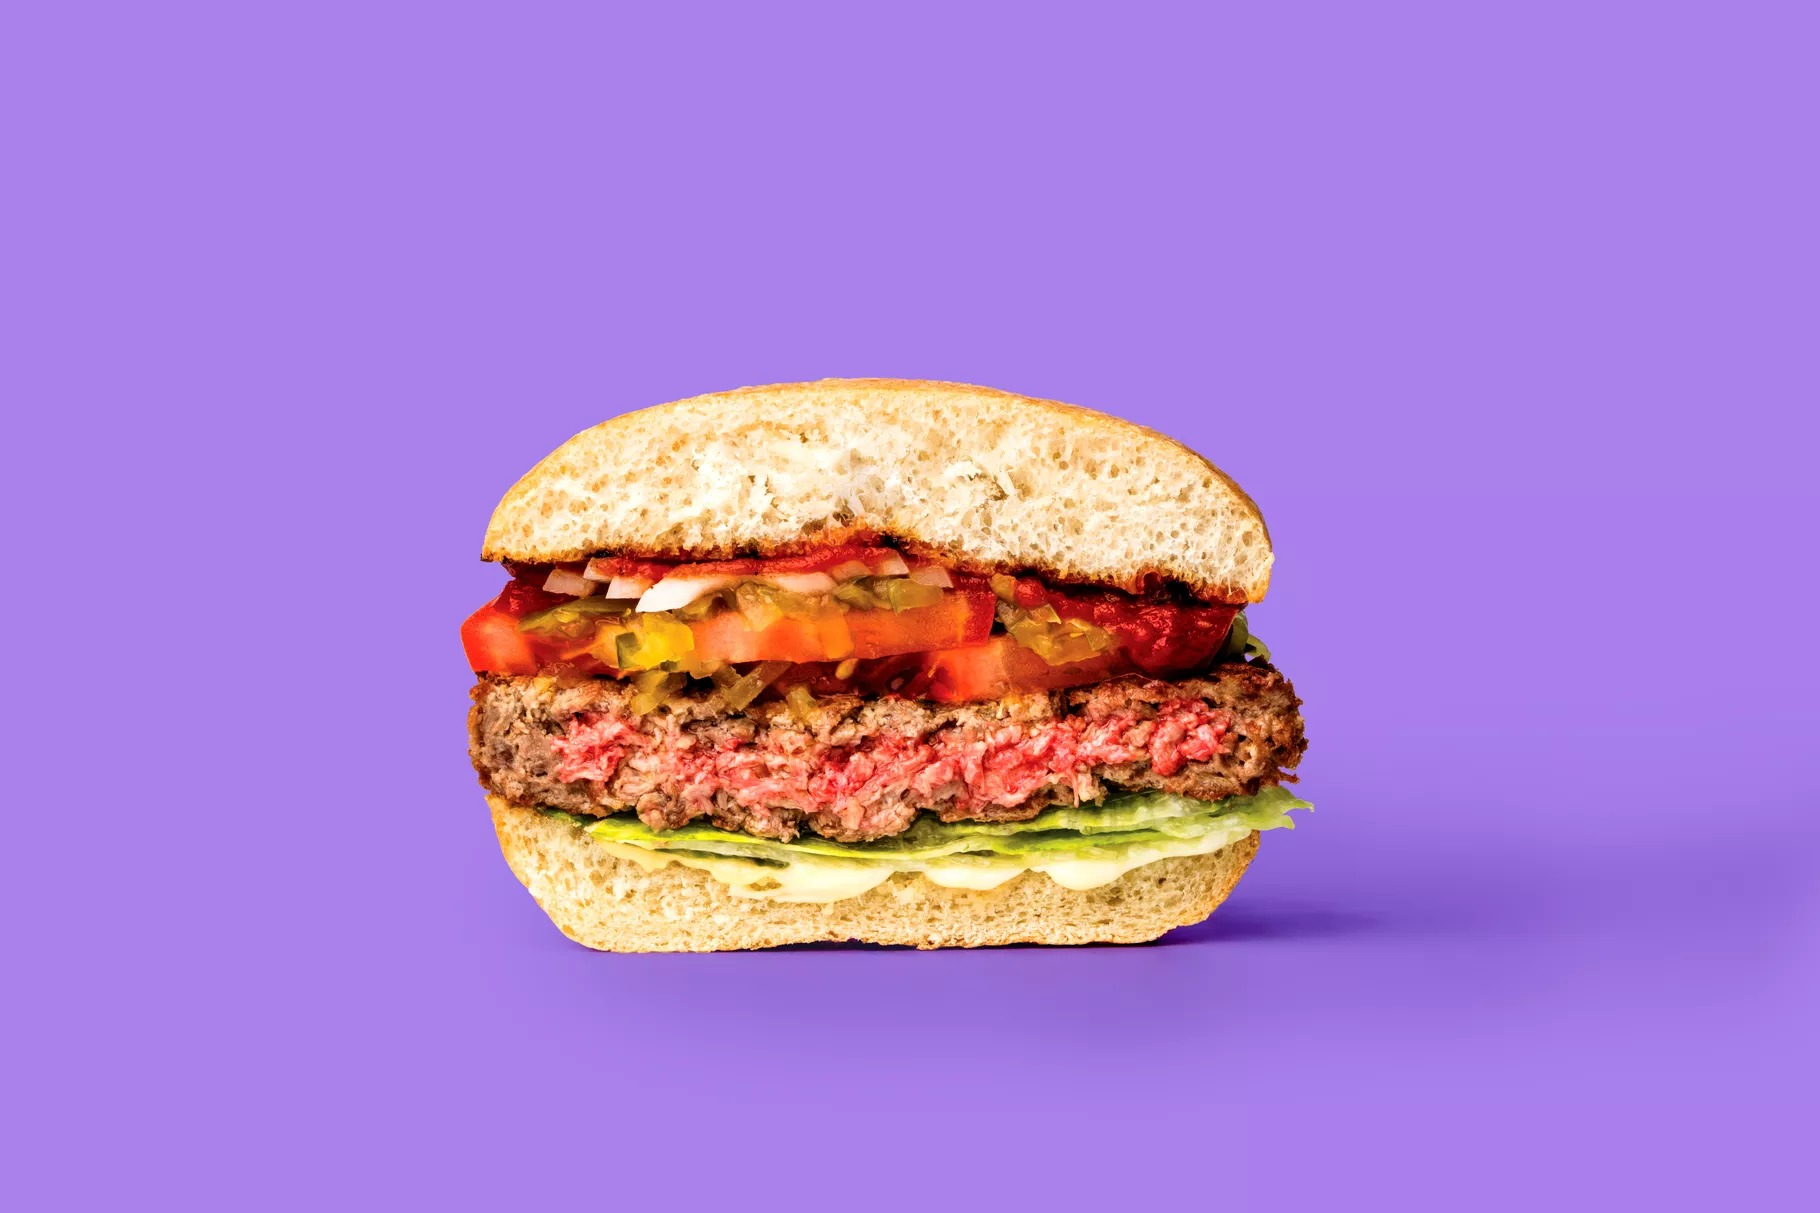 Vegan meat alternatives are on the rise